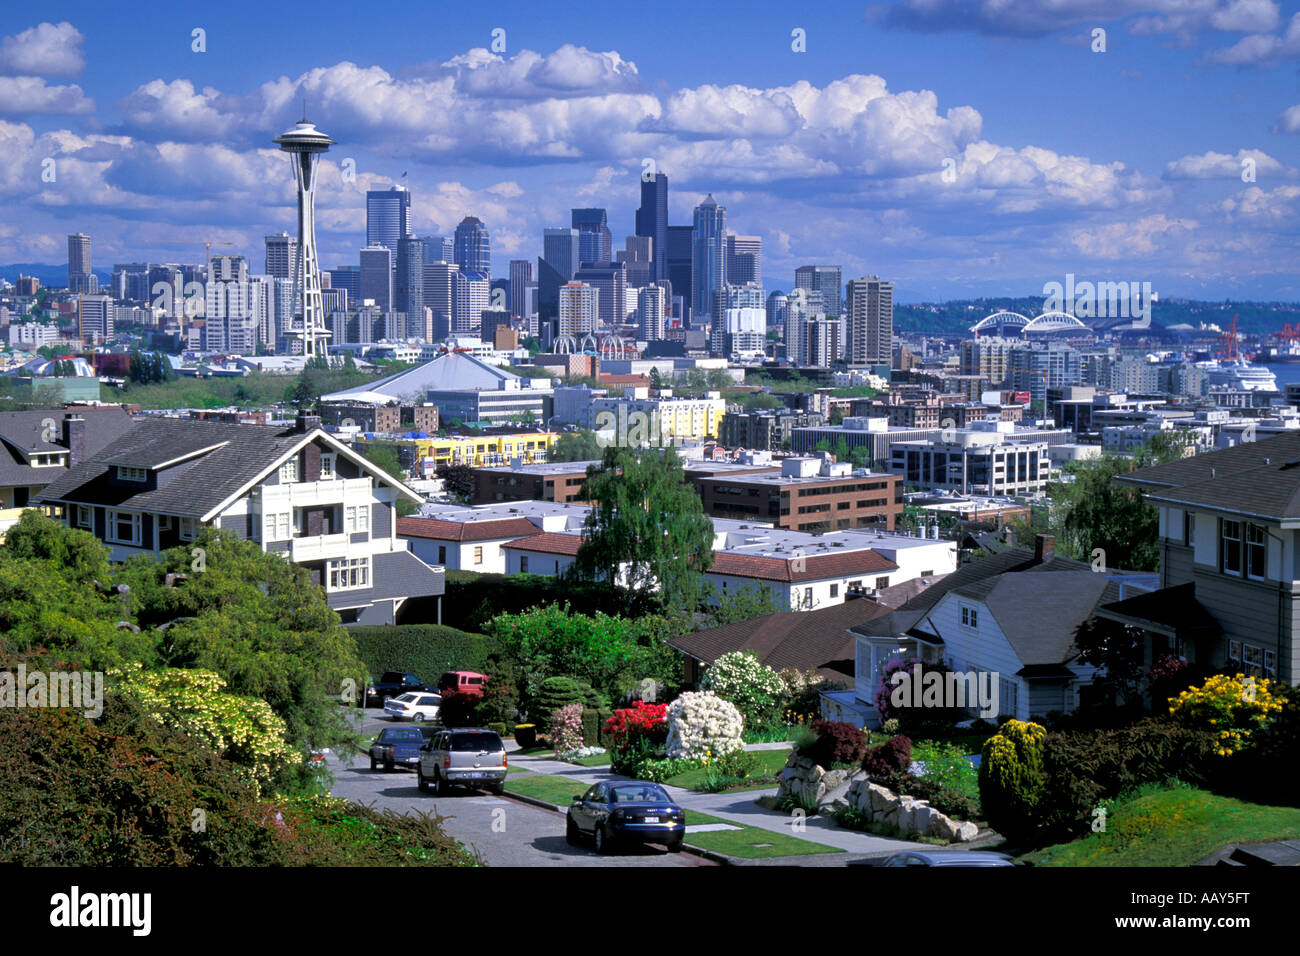 Houses And Homes In The Pacific Northwest With The Skyscrapers And